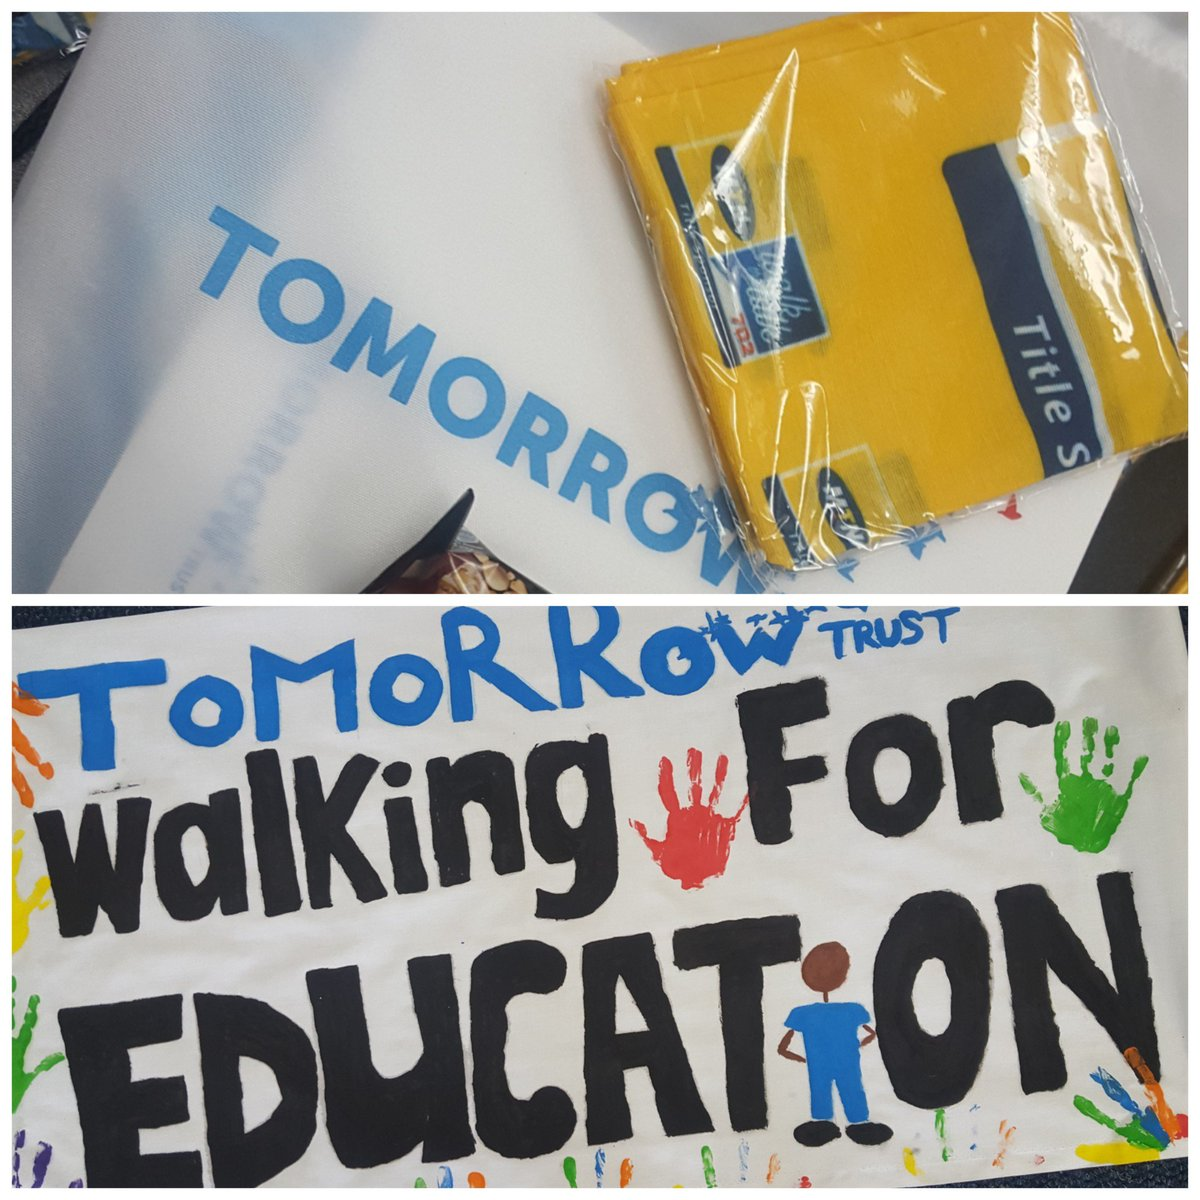 3 more days until we walk for education @Tomorrow_Trust #702walkthetalk  @Walkthetalk_ #Education #TTInspires #8km <br>http://pic.twitter.com/ZkkHOQ211M